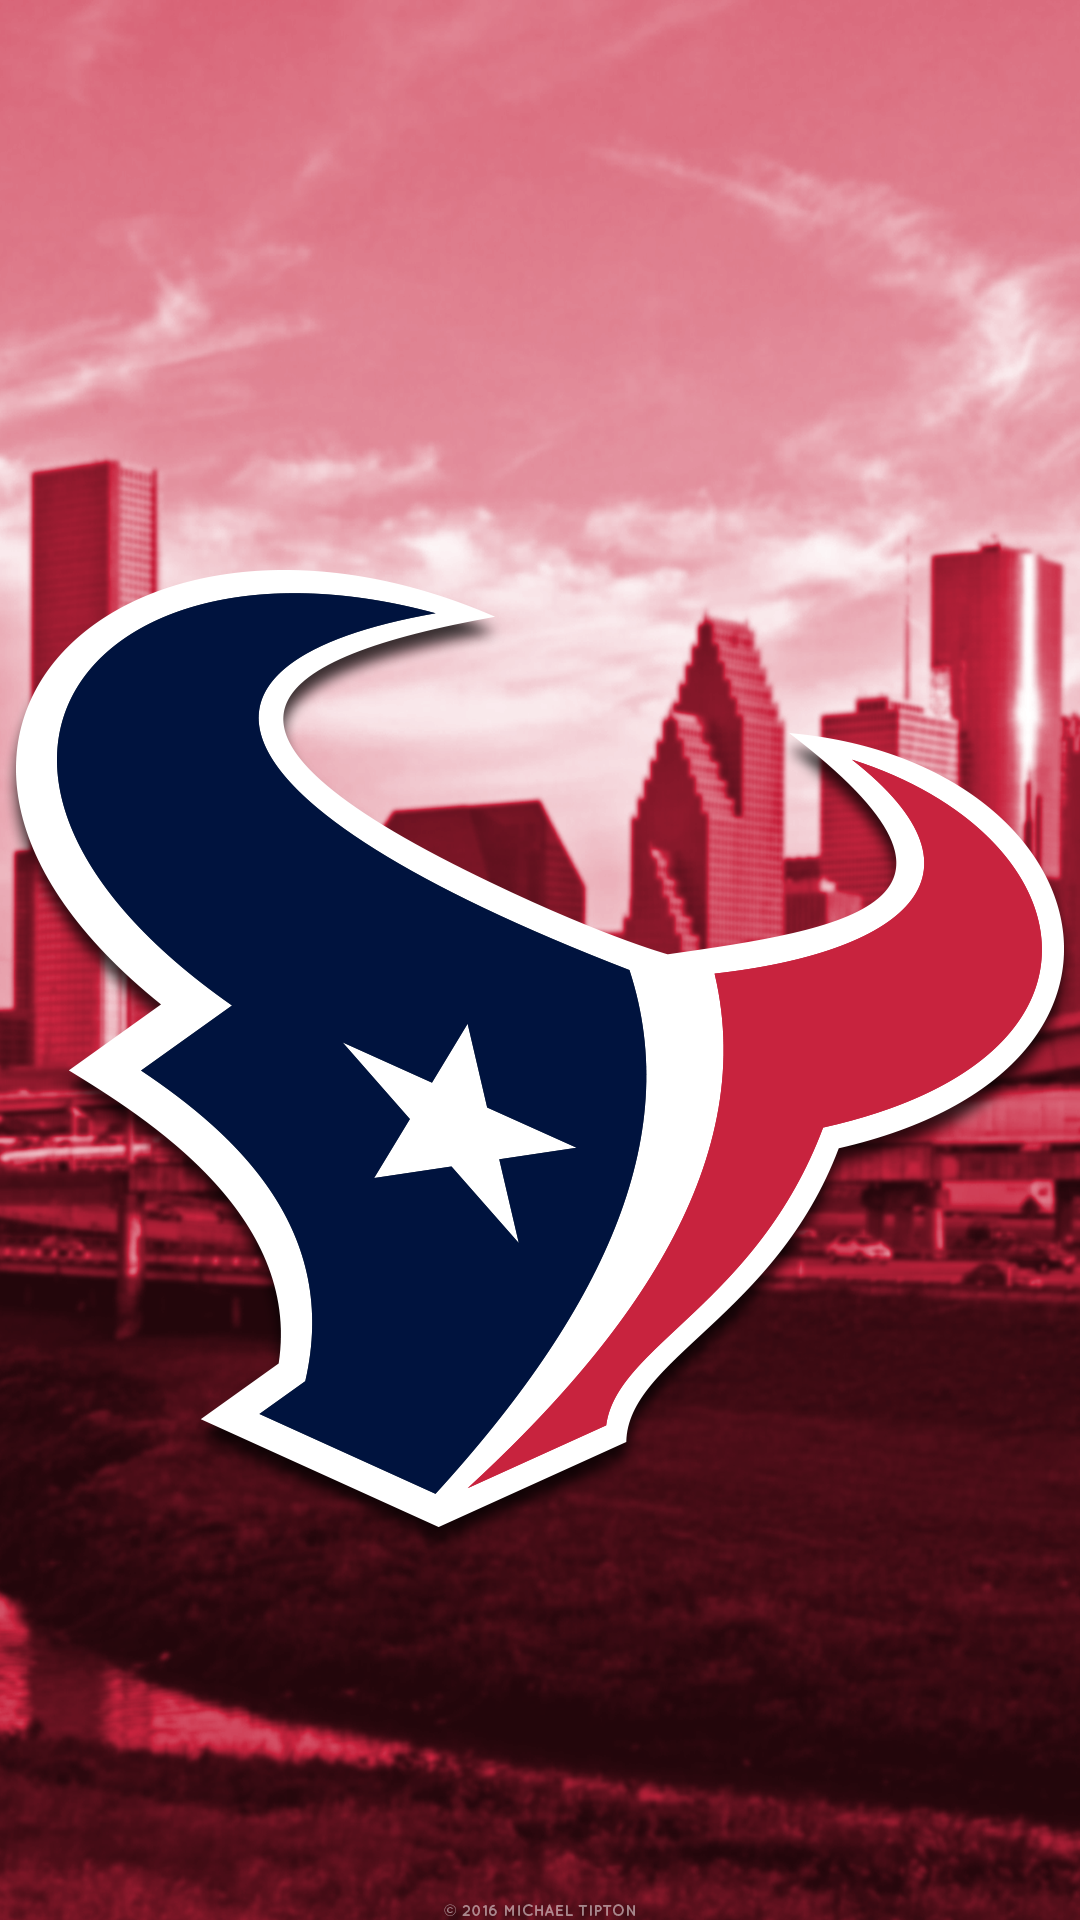 Houston Texans Wallpapers   PC iPhone Android 1080x1920